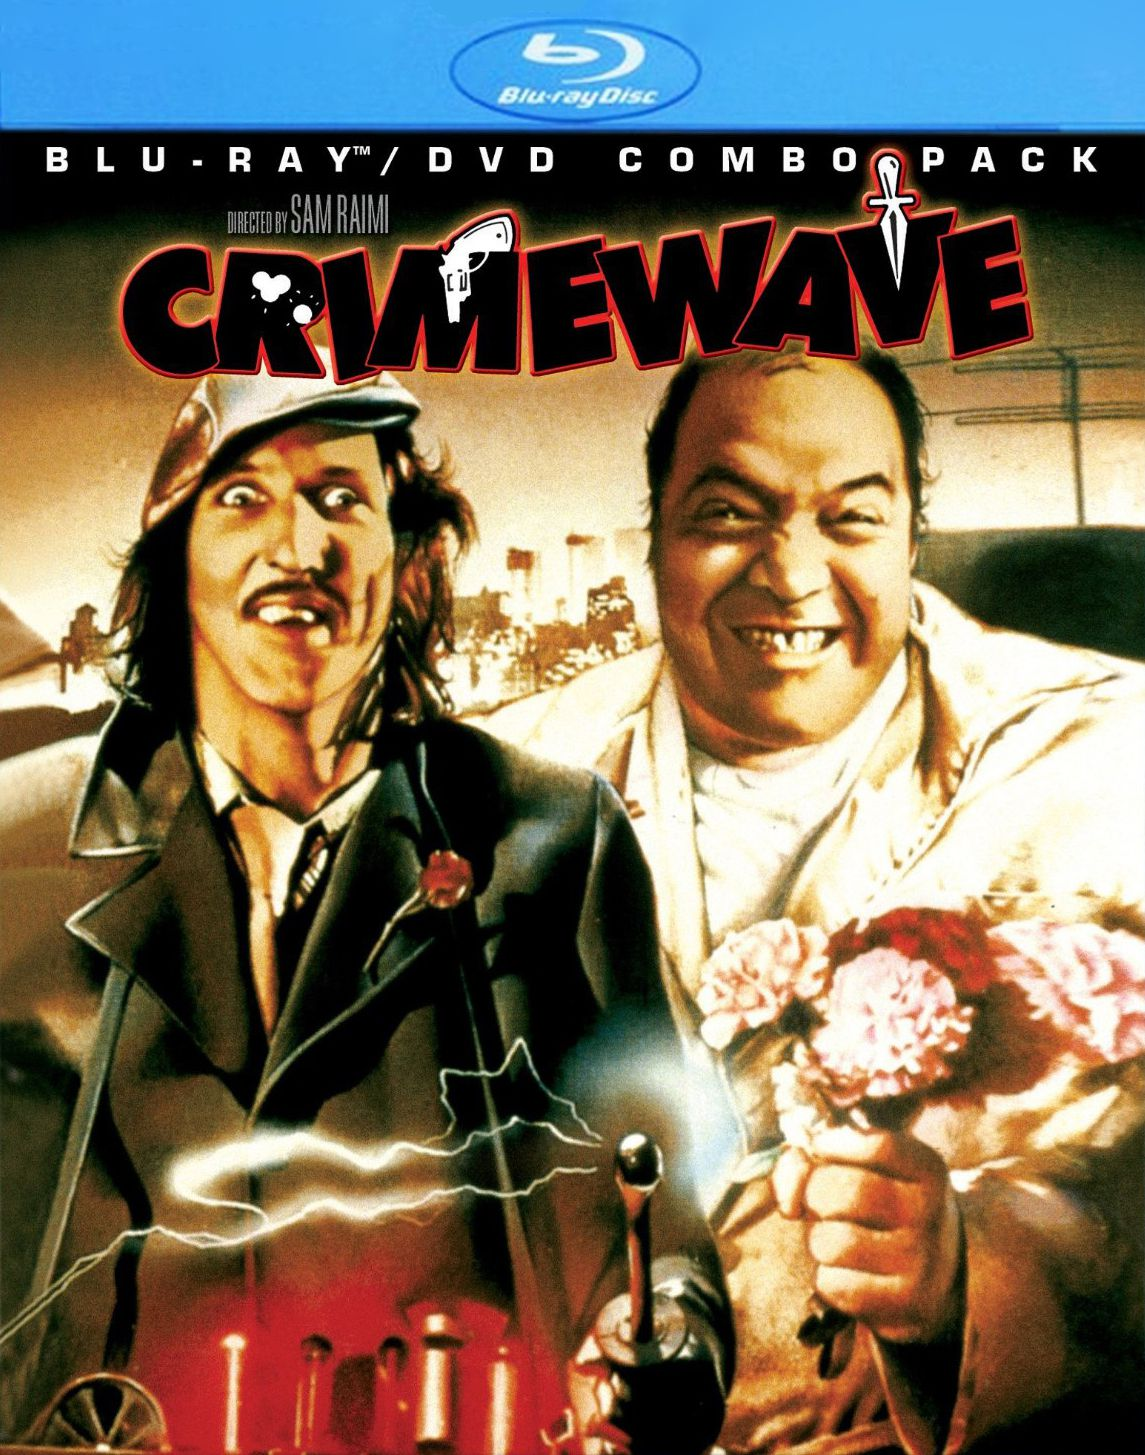 Crimewave